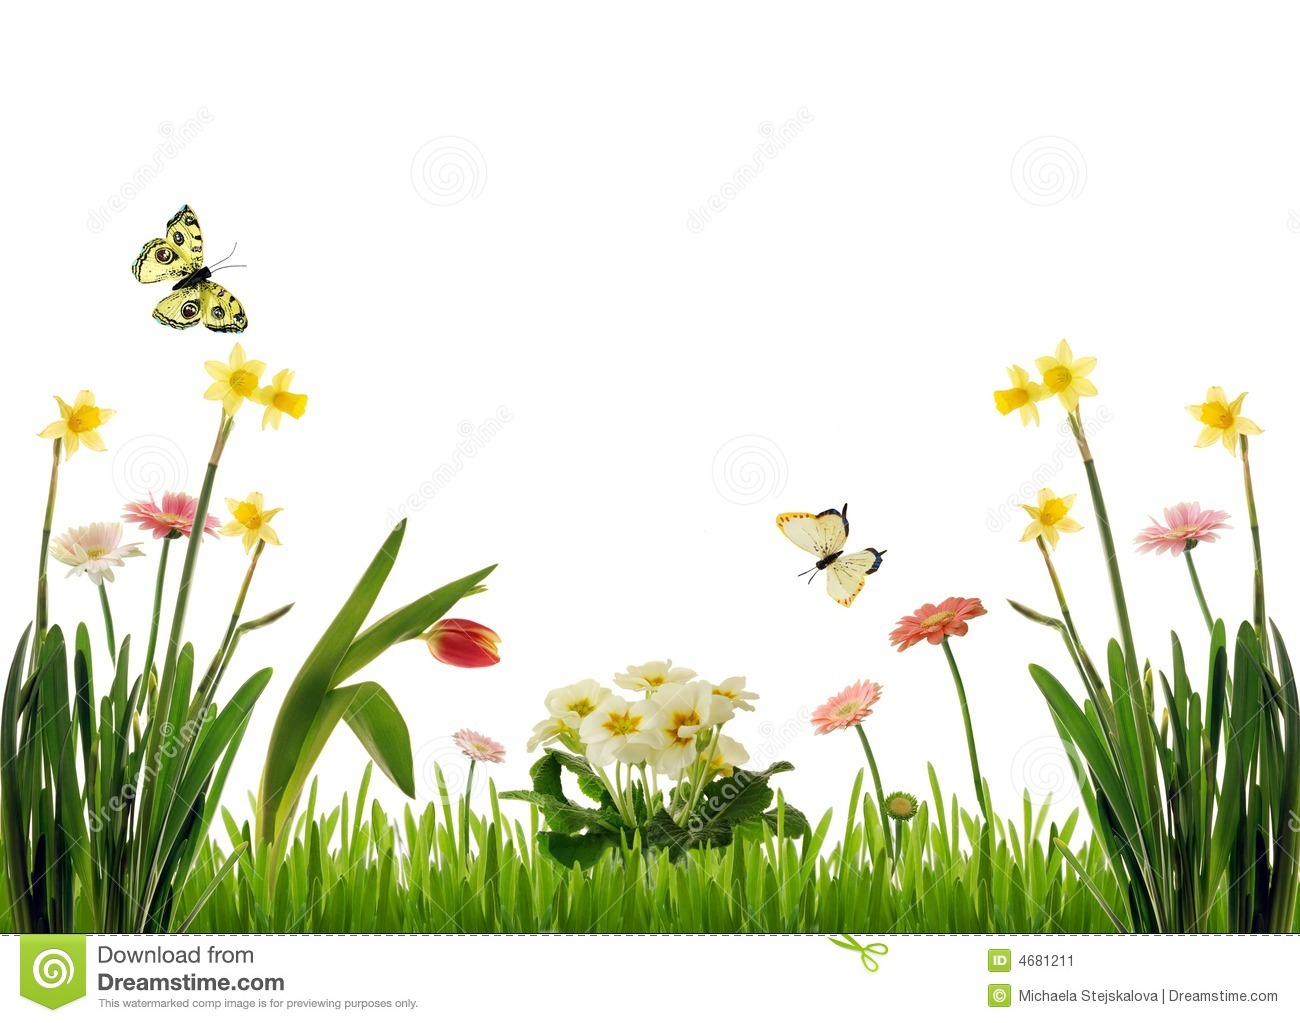 with flying butterflies, computer generated as spring illustration